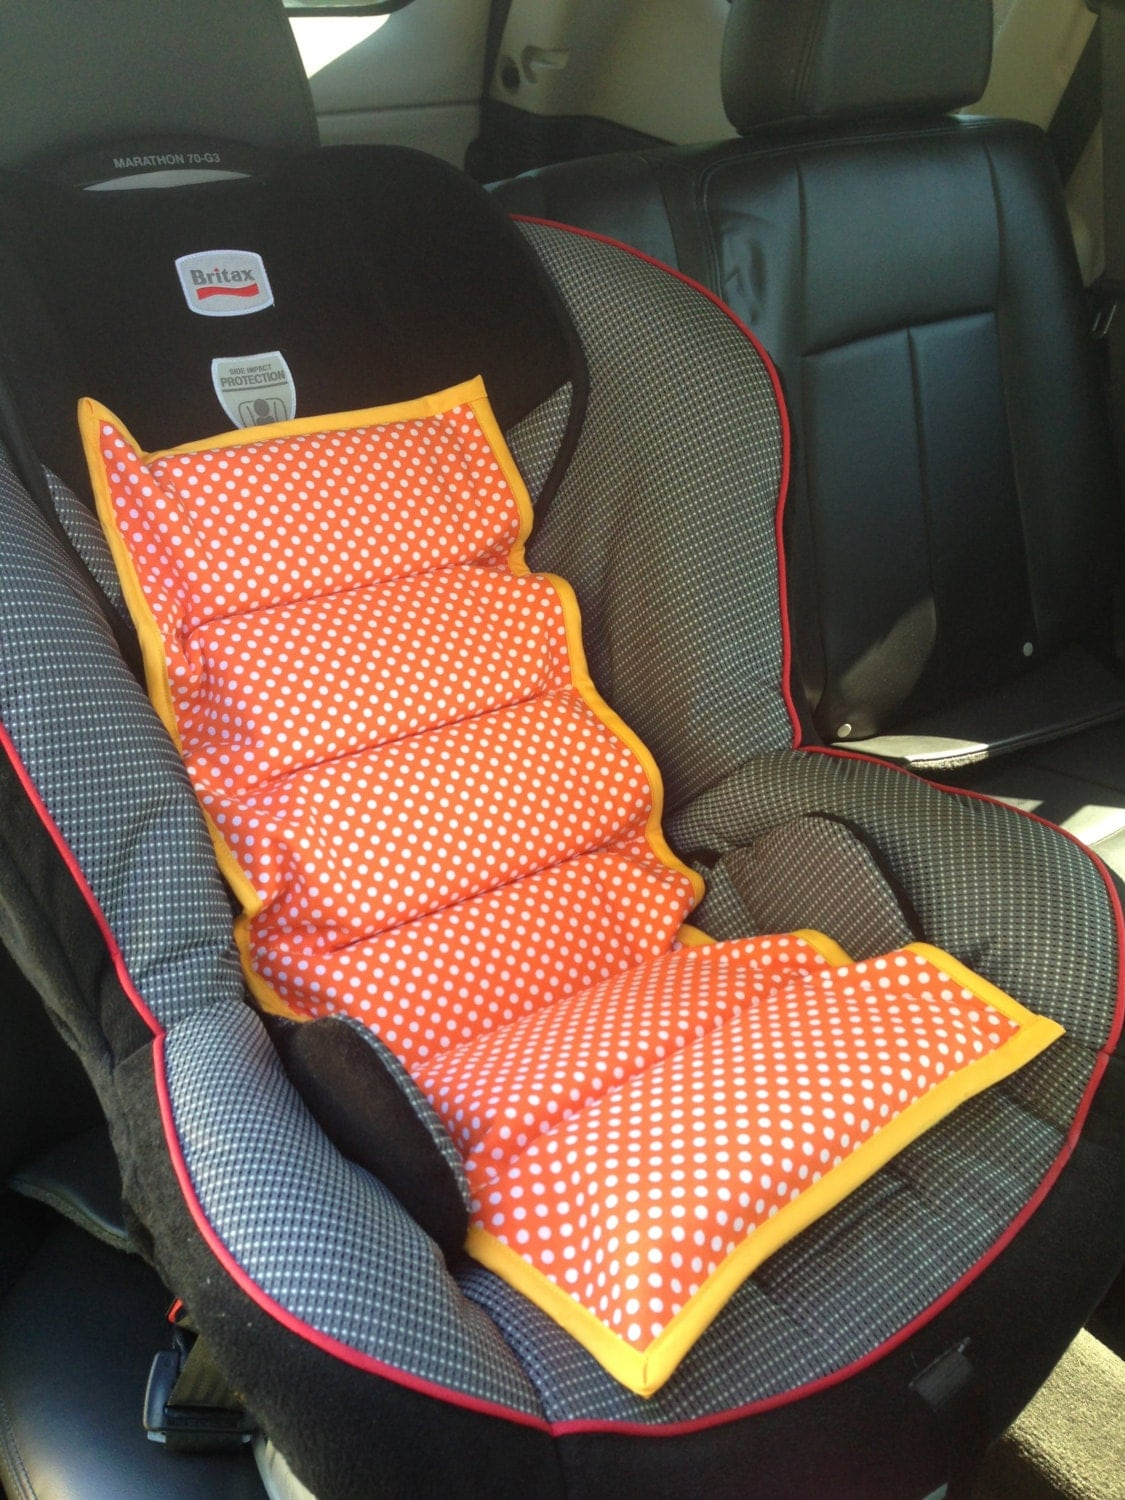 orange polka dot car seat cooler. Black Bedroom Furniture Sets. Home Design Ideas